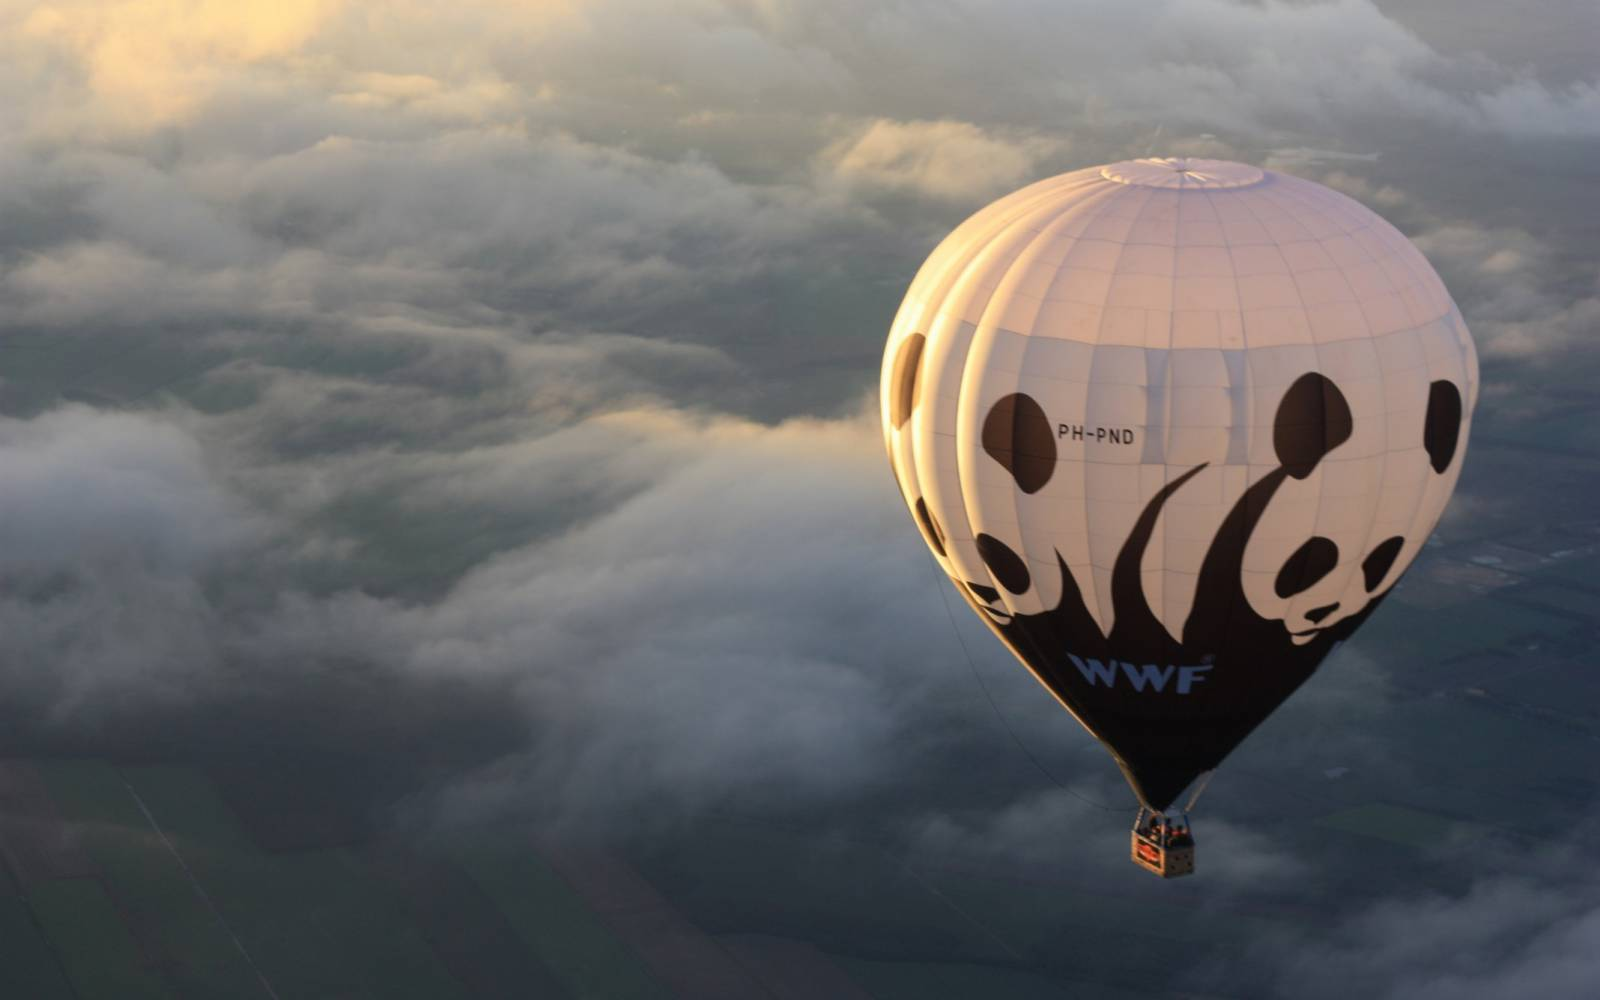 WWF Ballon in der Luft